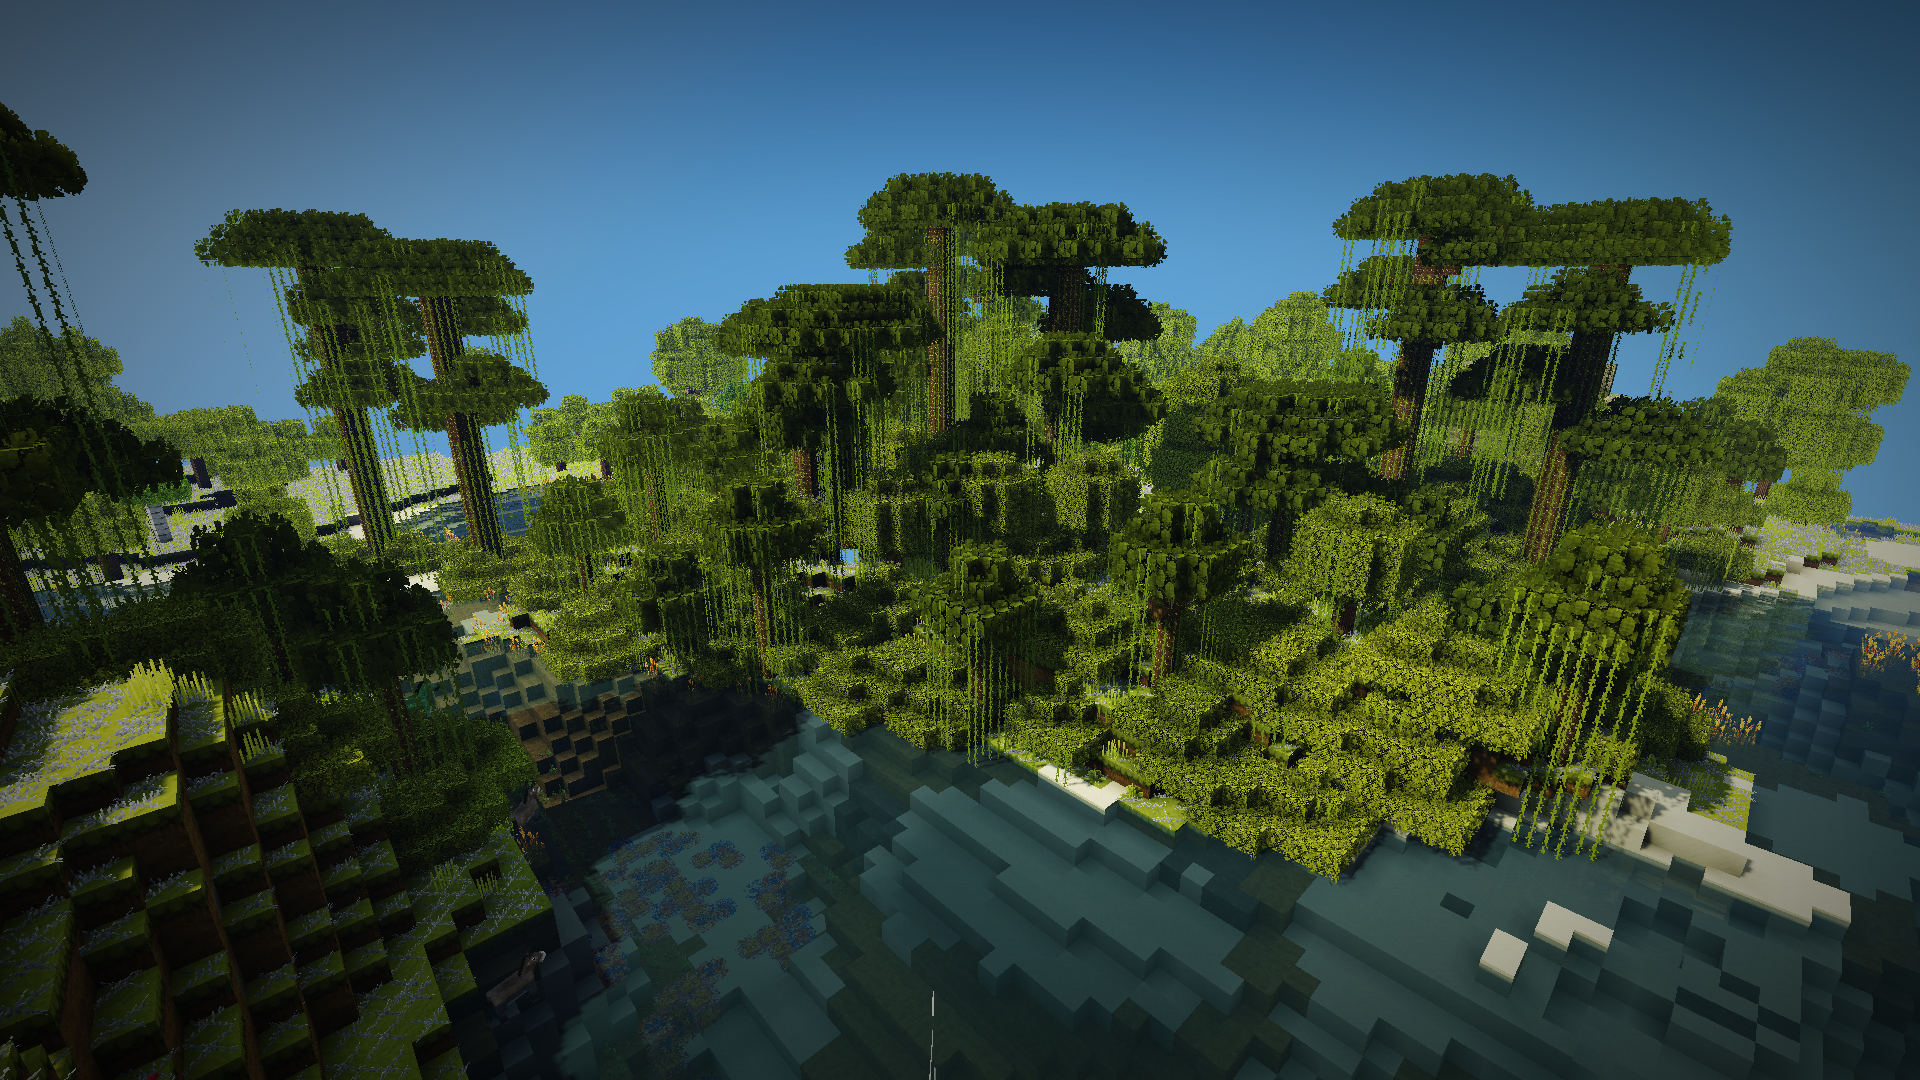 minecraft resource pack 16×16 greatwood 1.8 jungle